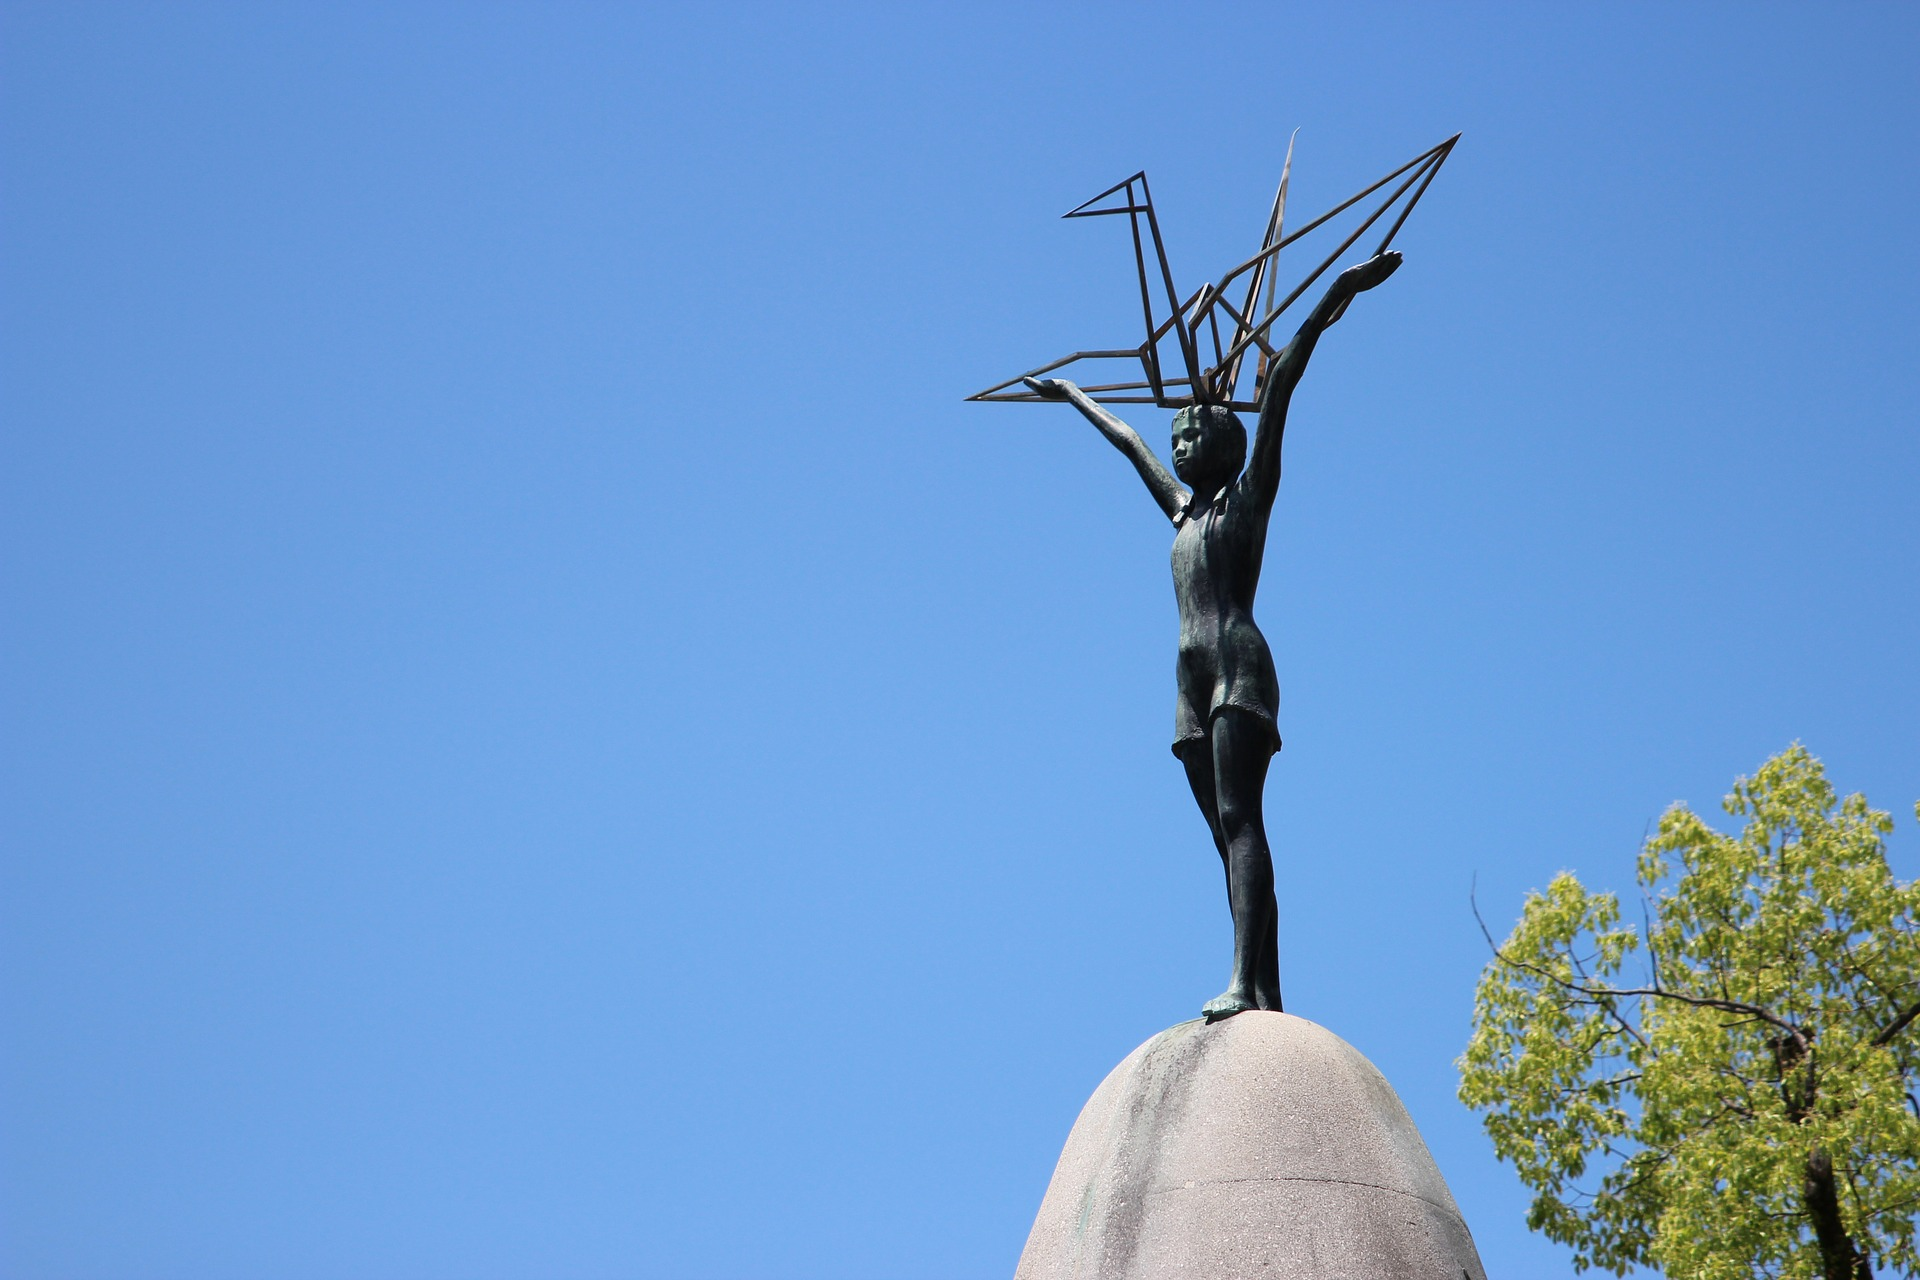 The Sadoko memorial in Hiroshima - a statue of a girl holding a metal crane, against a blue sky.